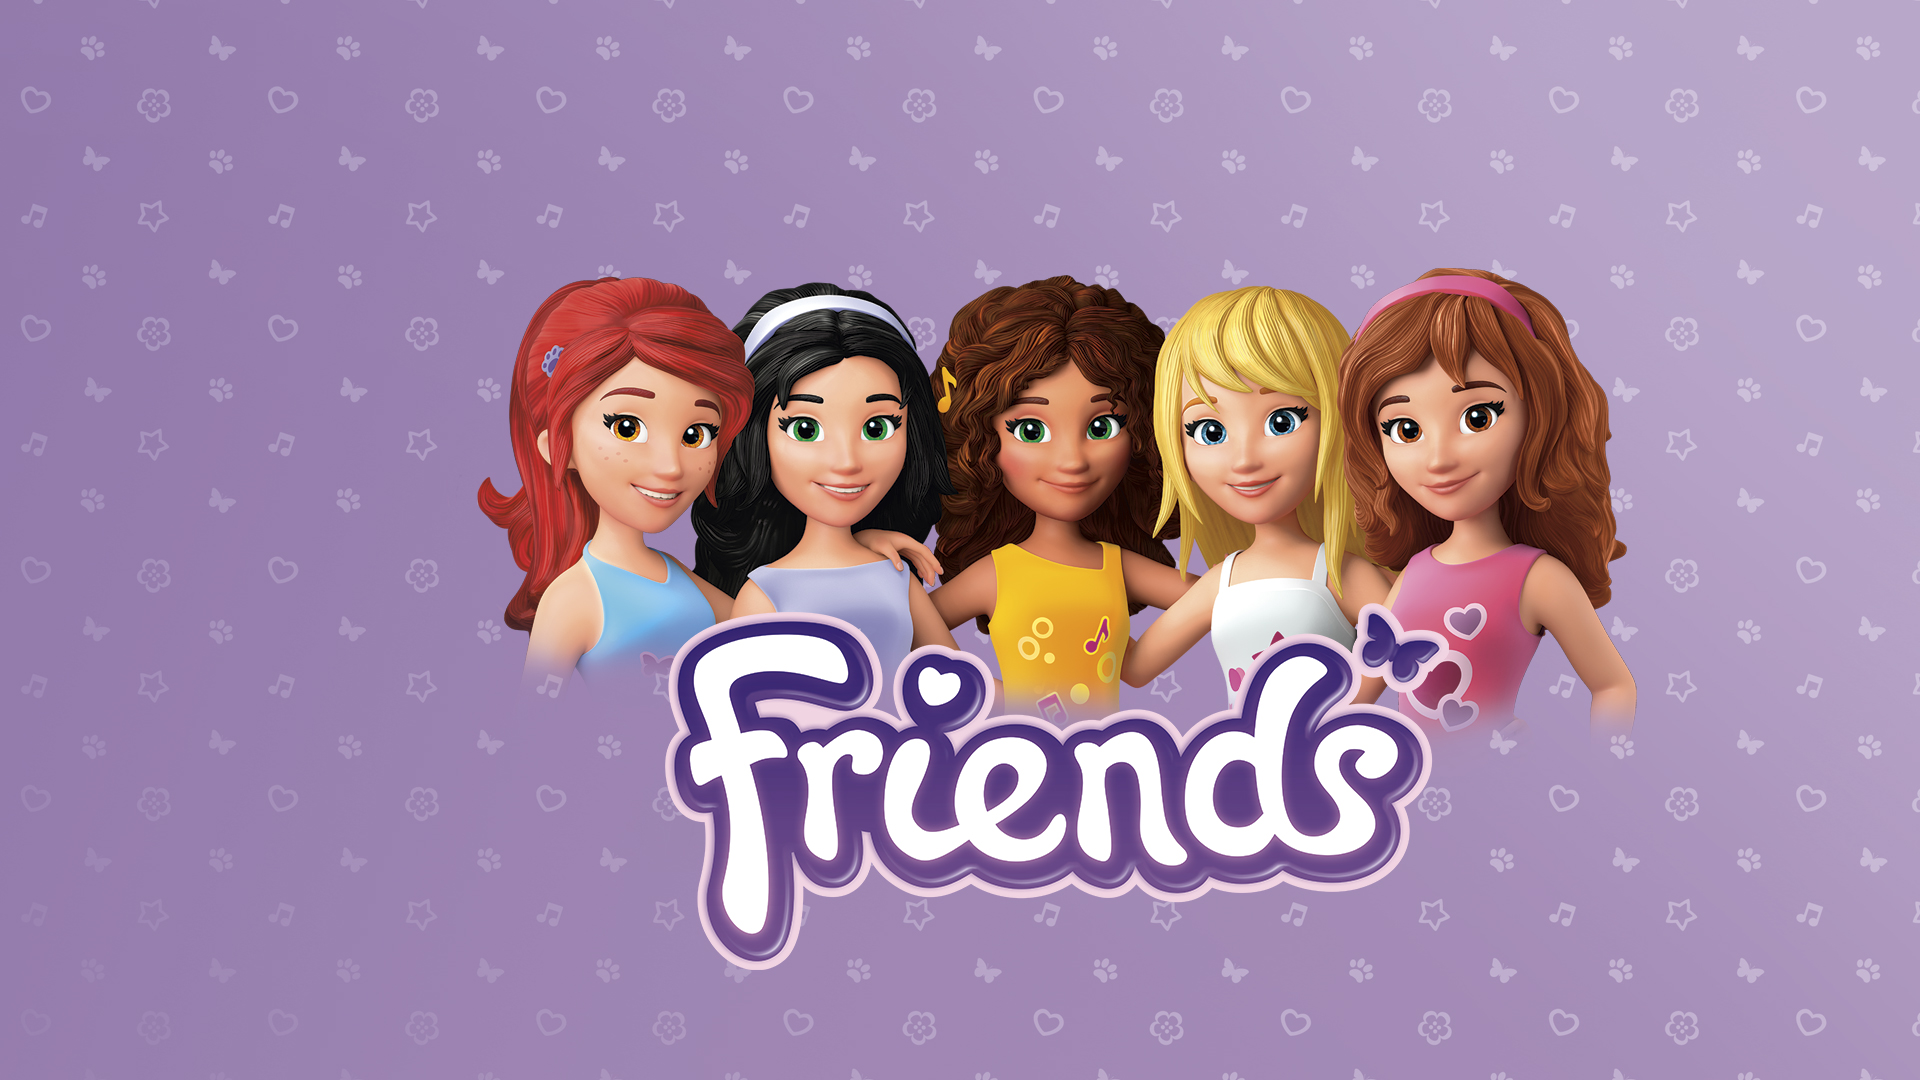 Download Lego Friends Wallpaper Gallery